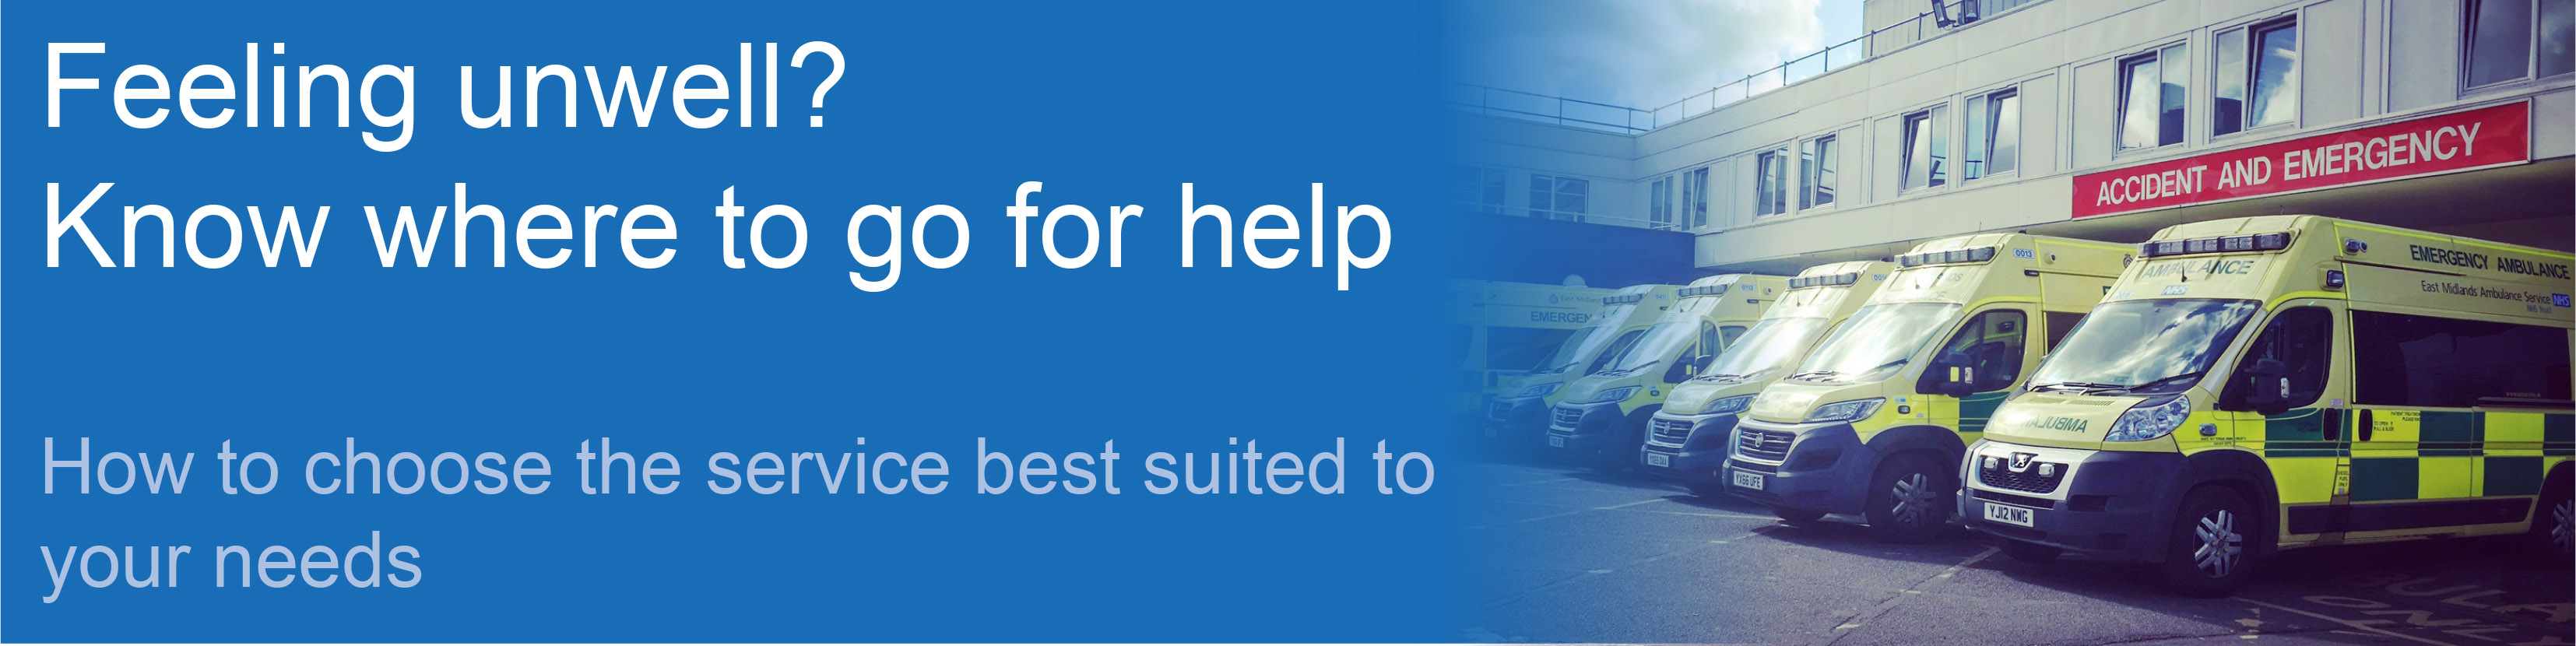 Feeling unwell? Know where to go for help. How to choose the services best suited to your needs